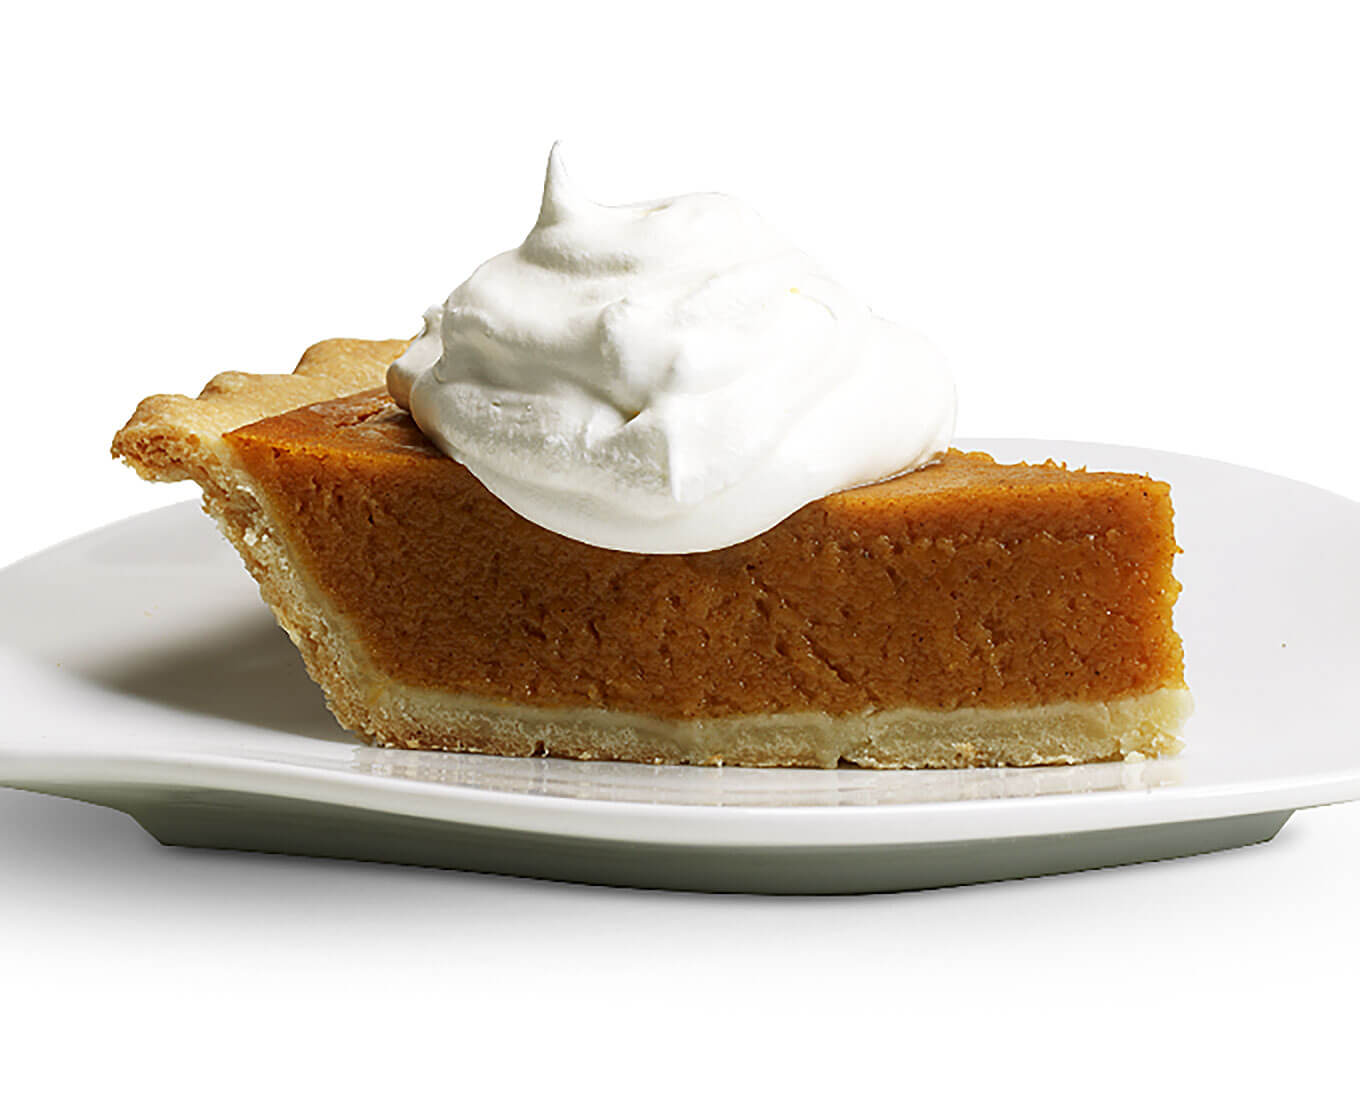 RumChata Pumpkin Pie, with whipped cream, on white plate